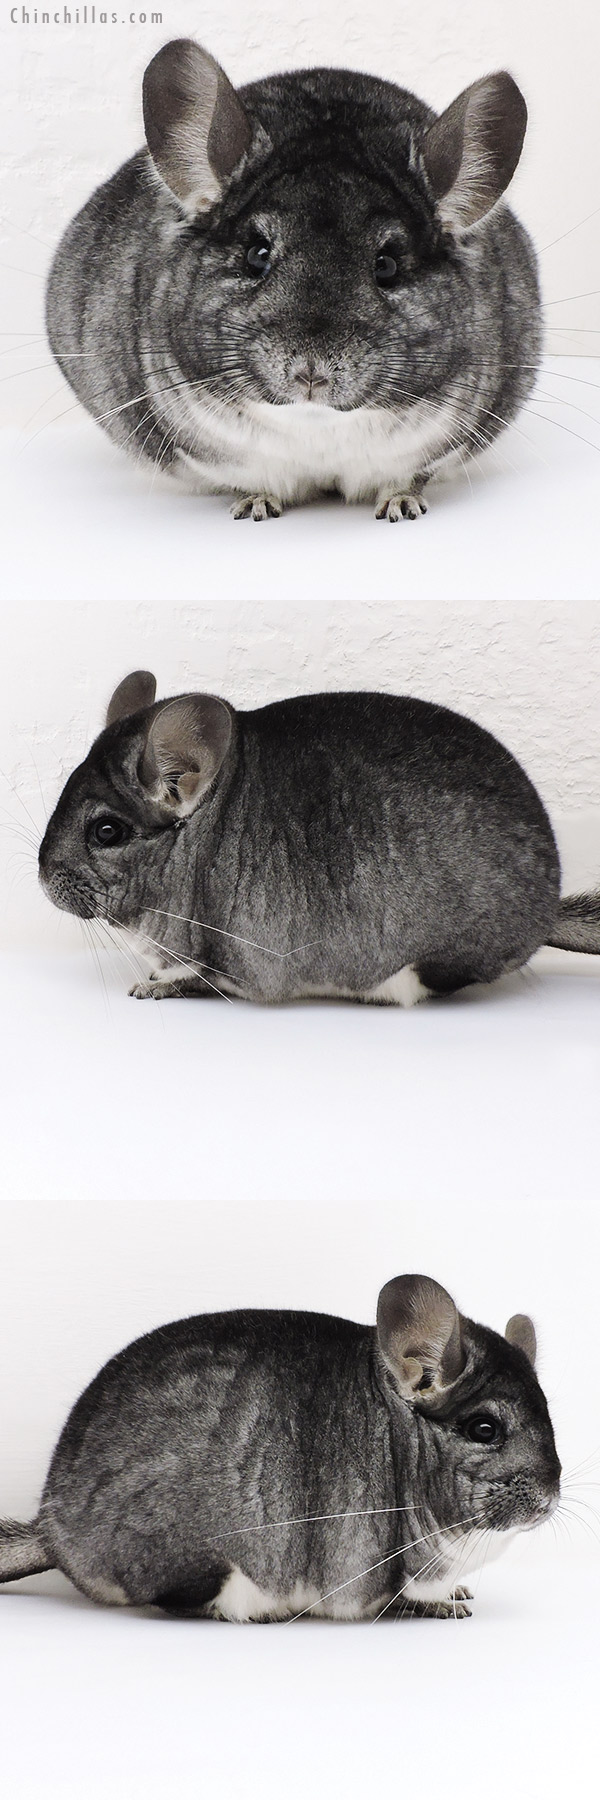 17113 Large Blocky Premium Production Quality Standard Female Chinchilla